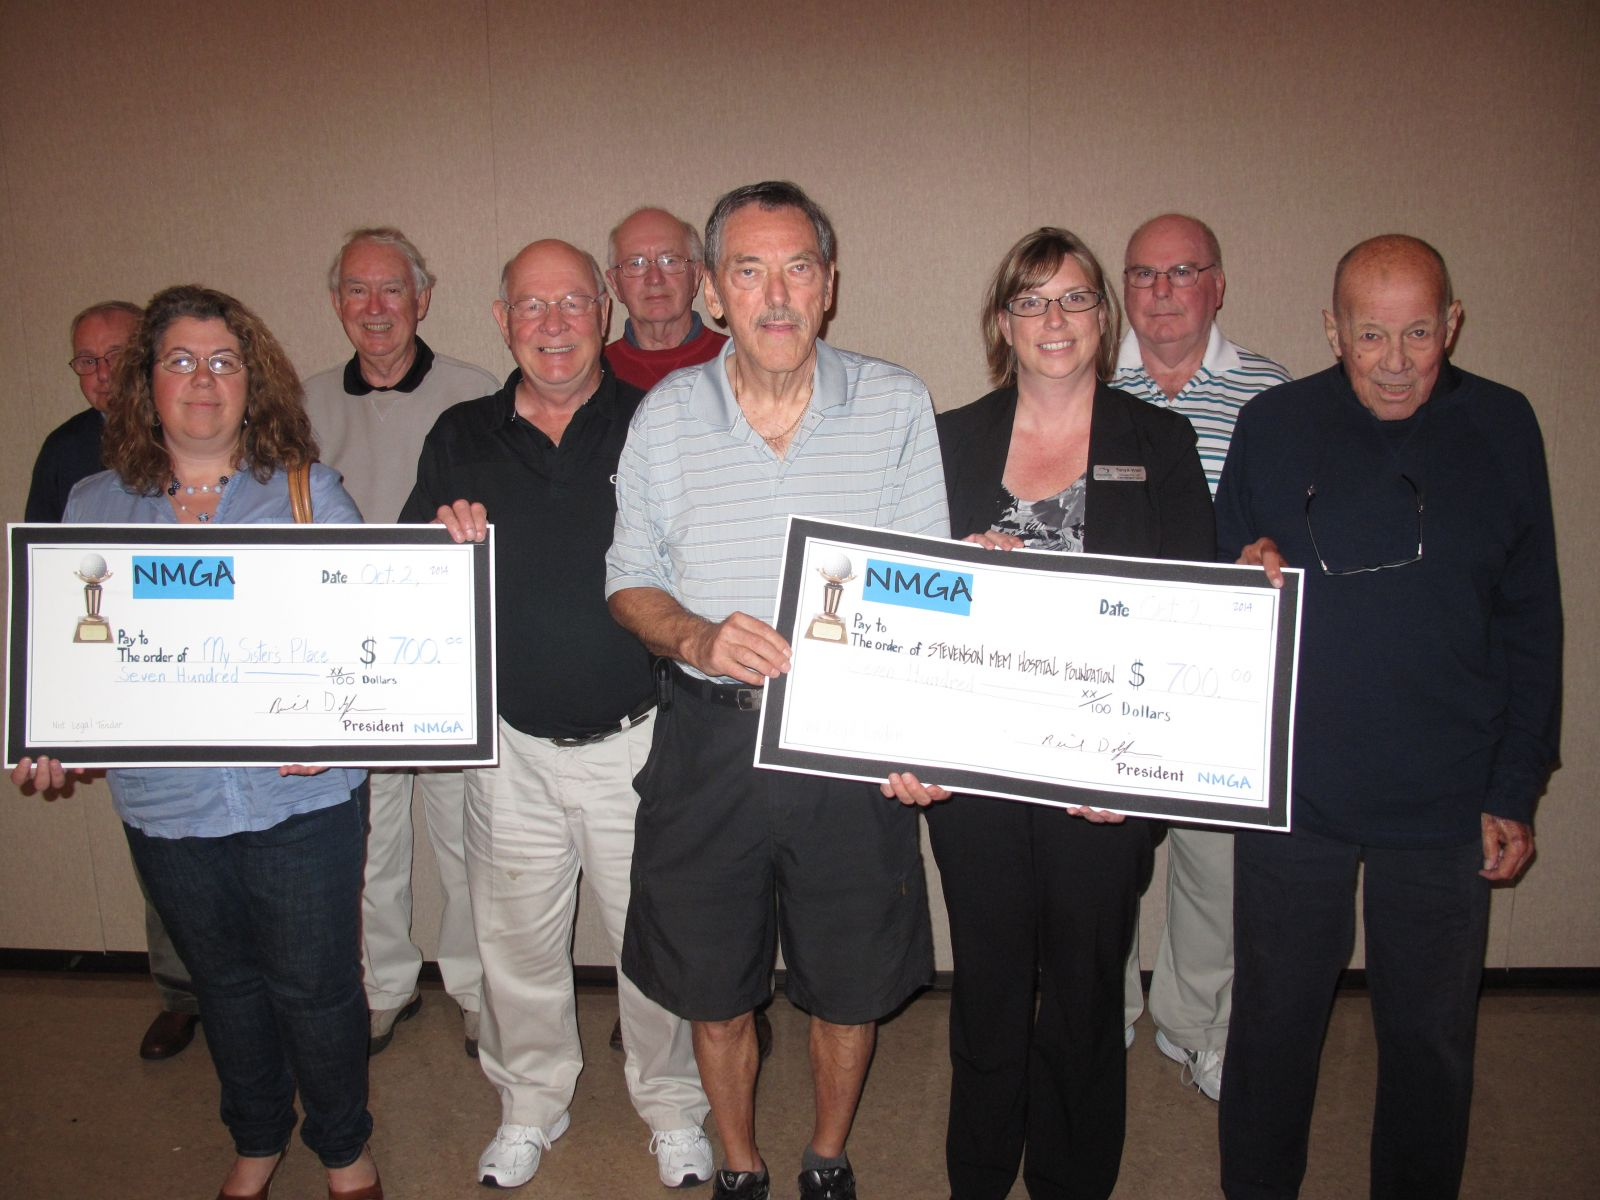 donation to MSP from the Nottawasaga Men's Golf Association